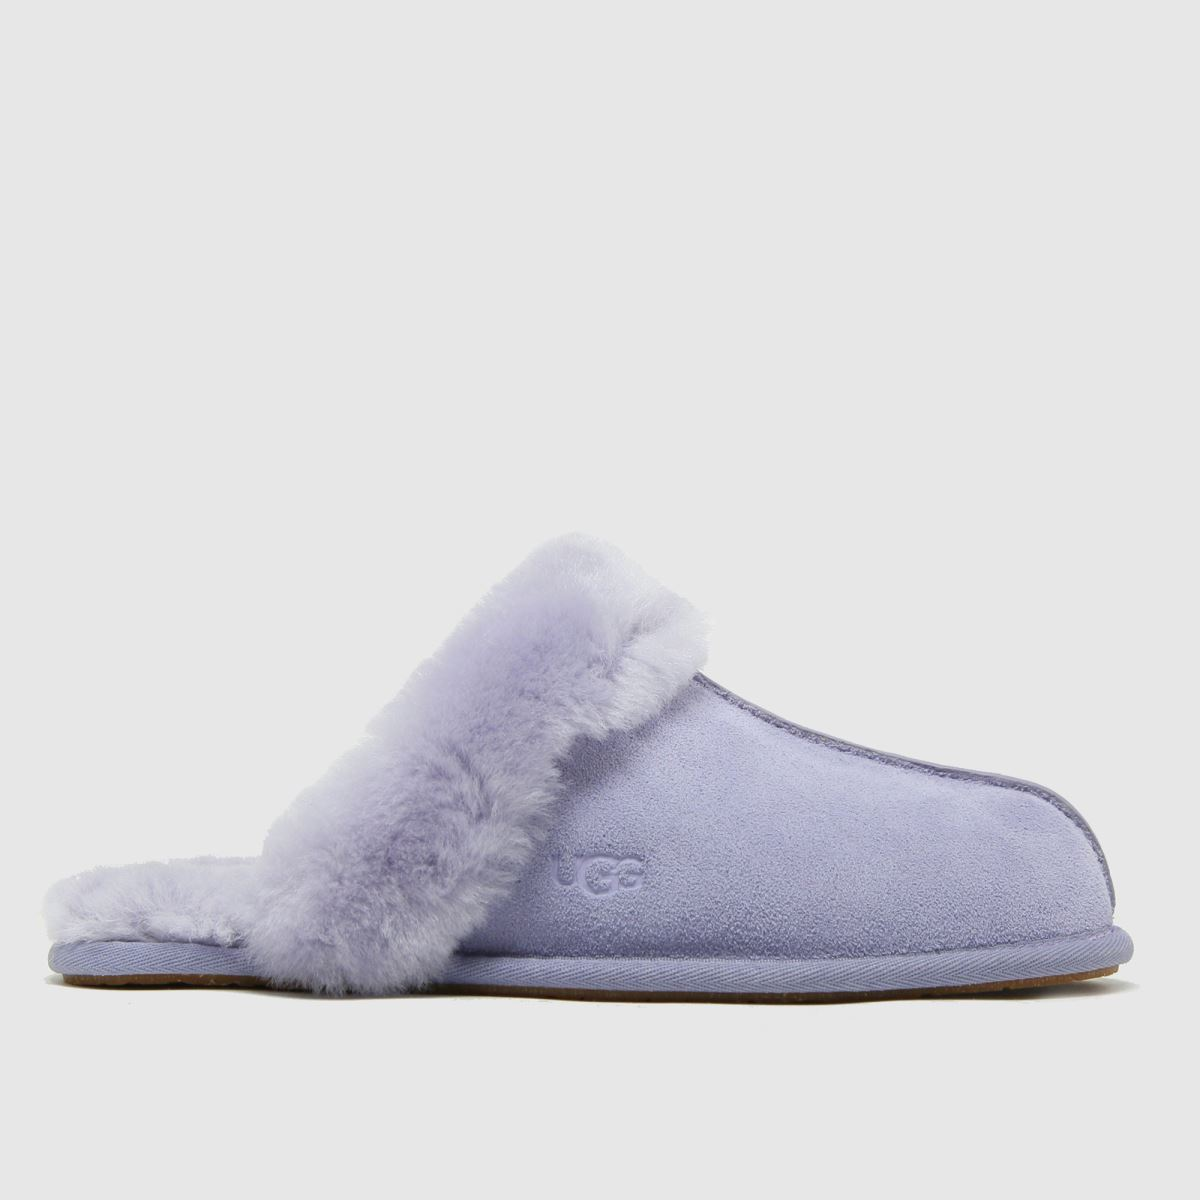 UGG Lilac Scuffette Slippers